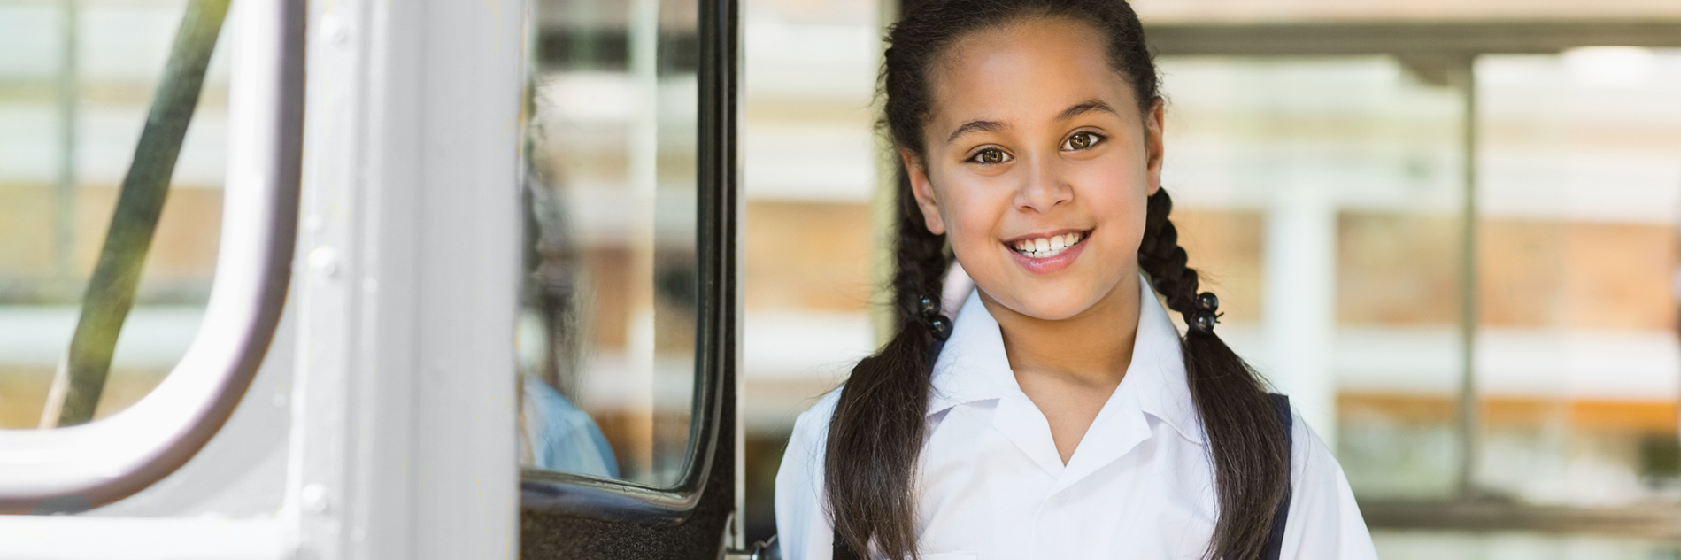 Castle Minibus' website home page header image of school girl smiling to camera